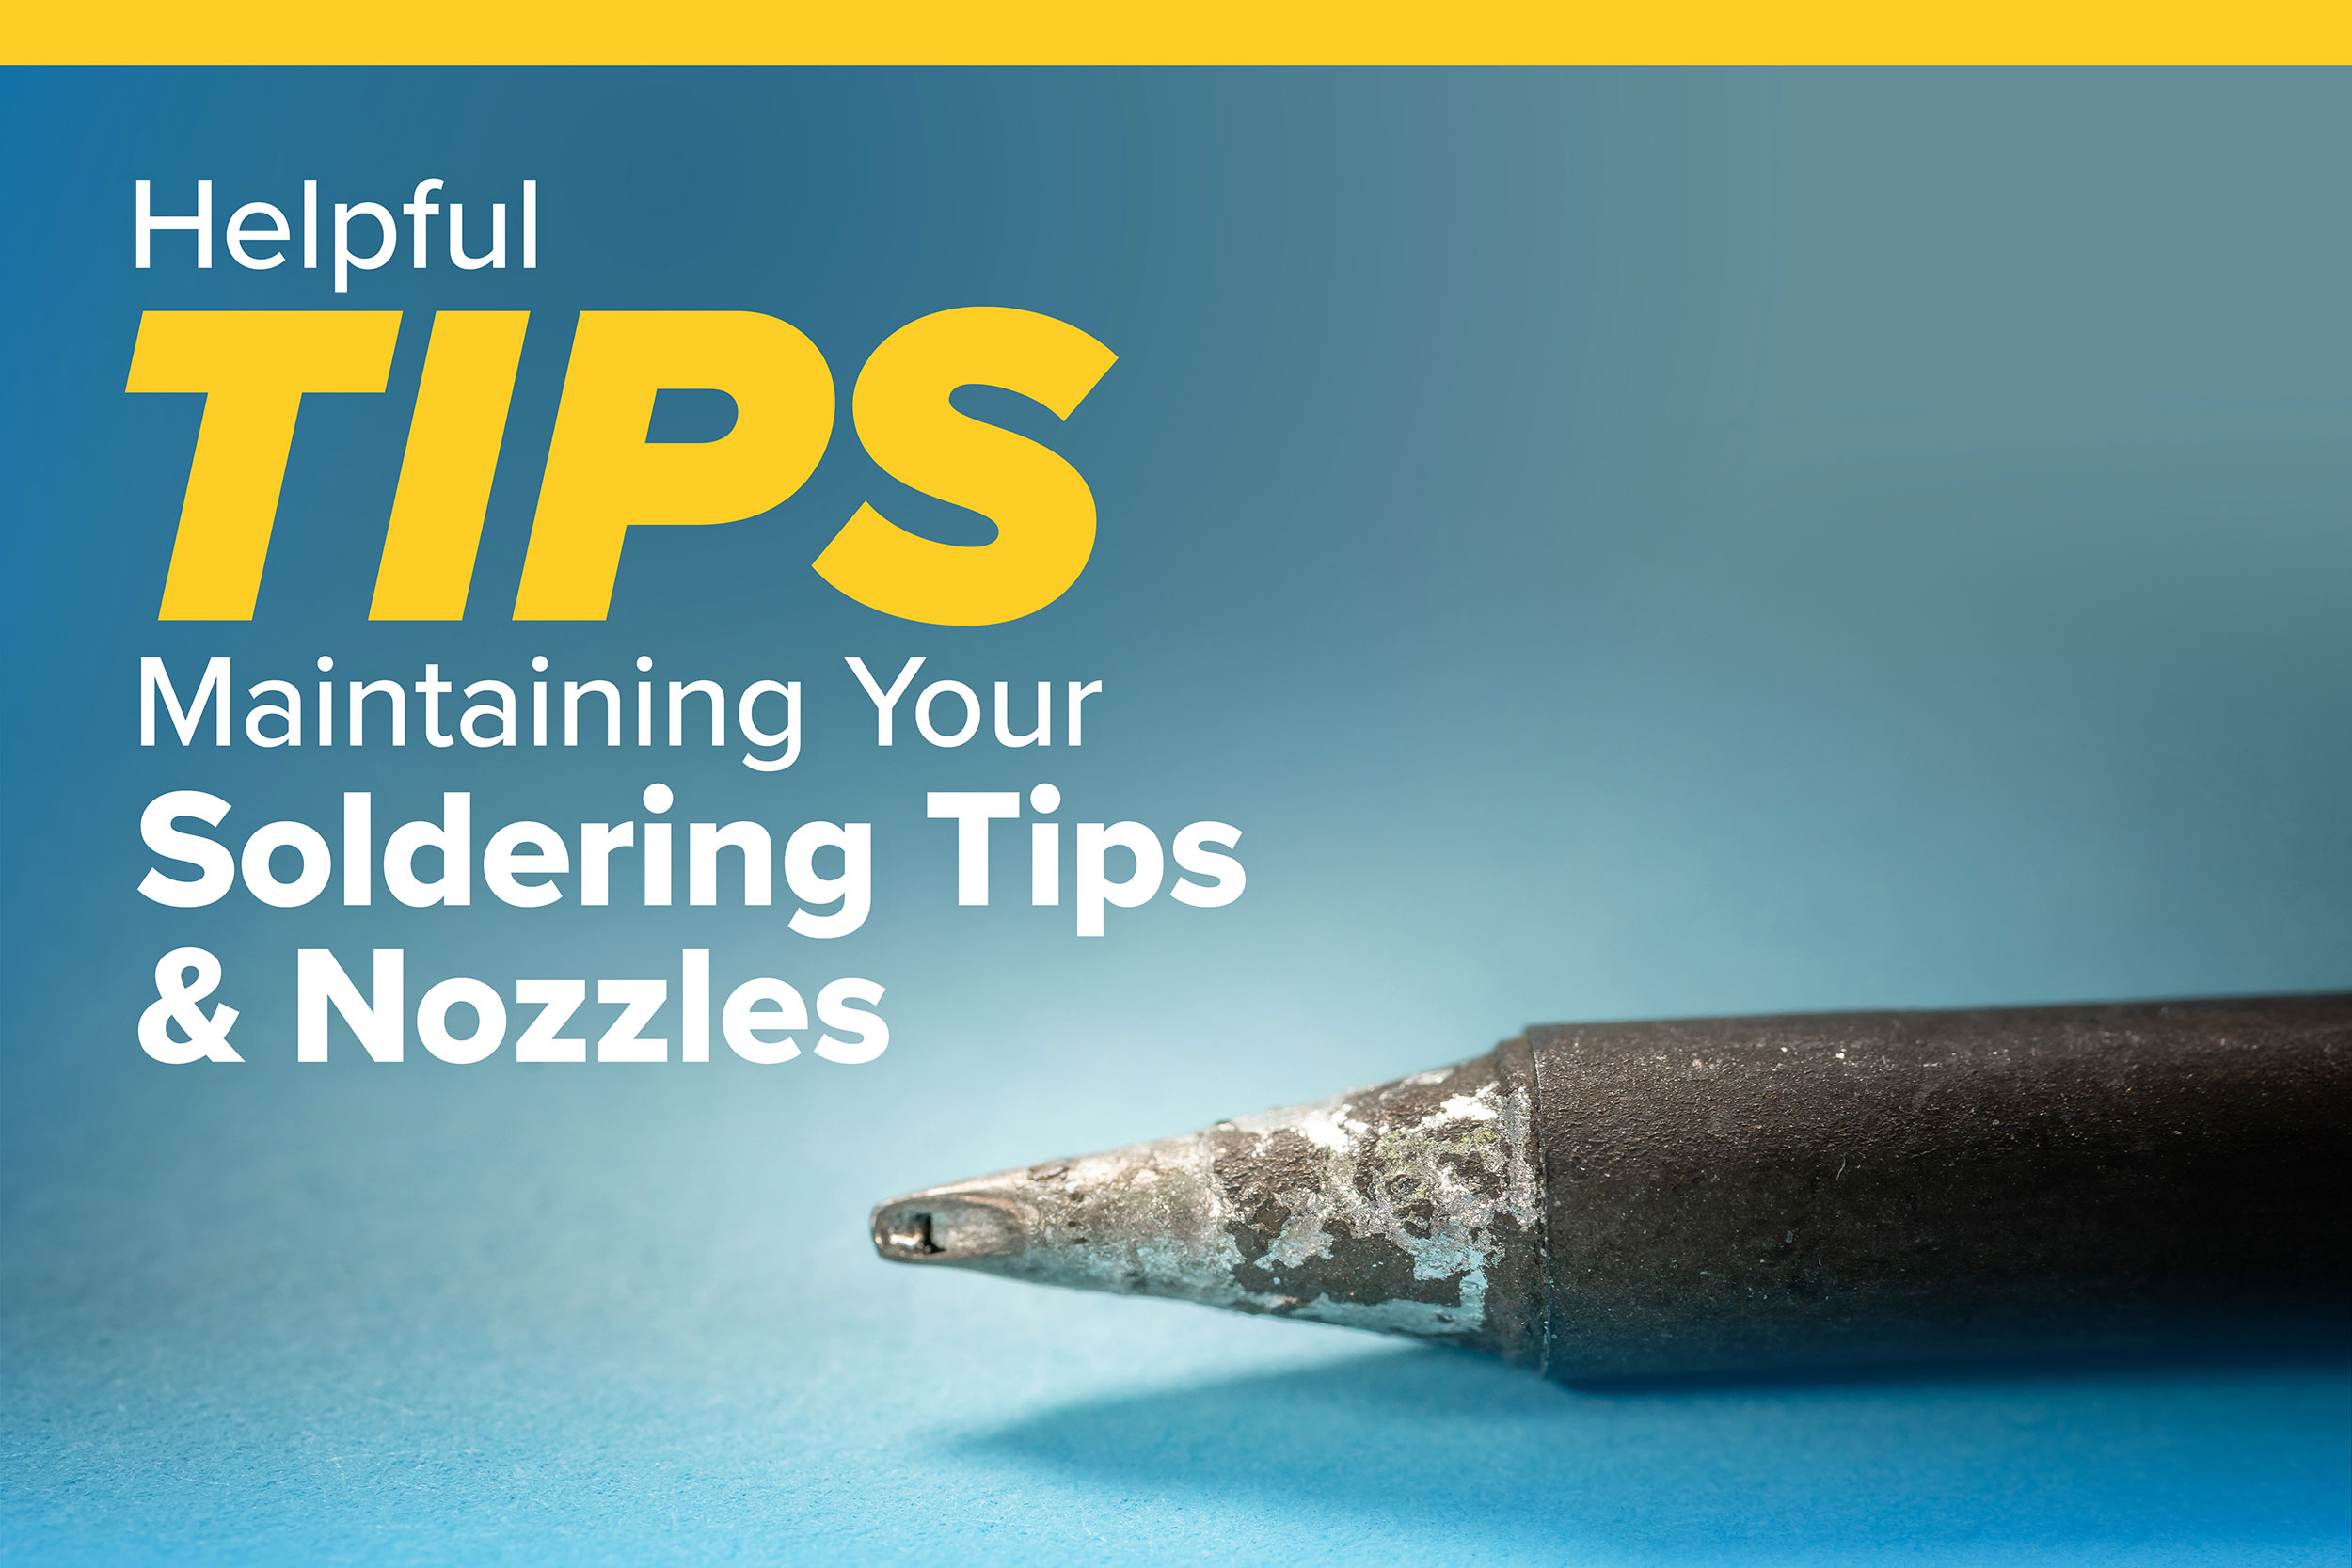 Helpful Tips on Maintaining Your Soldering Tips and Nozzles